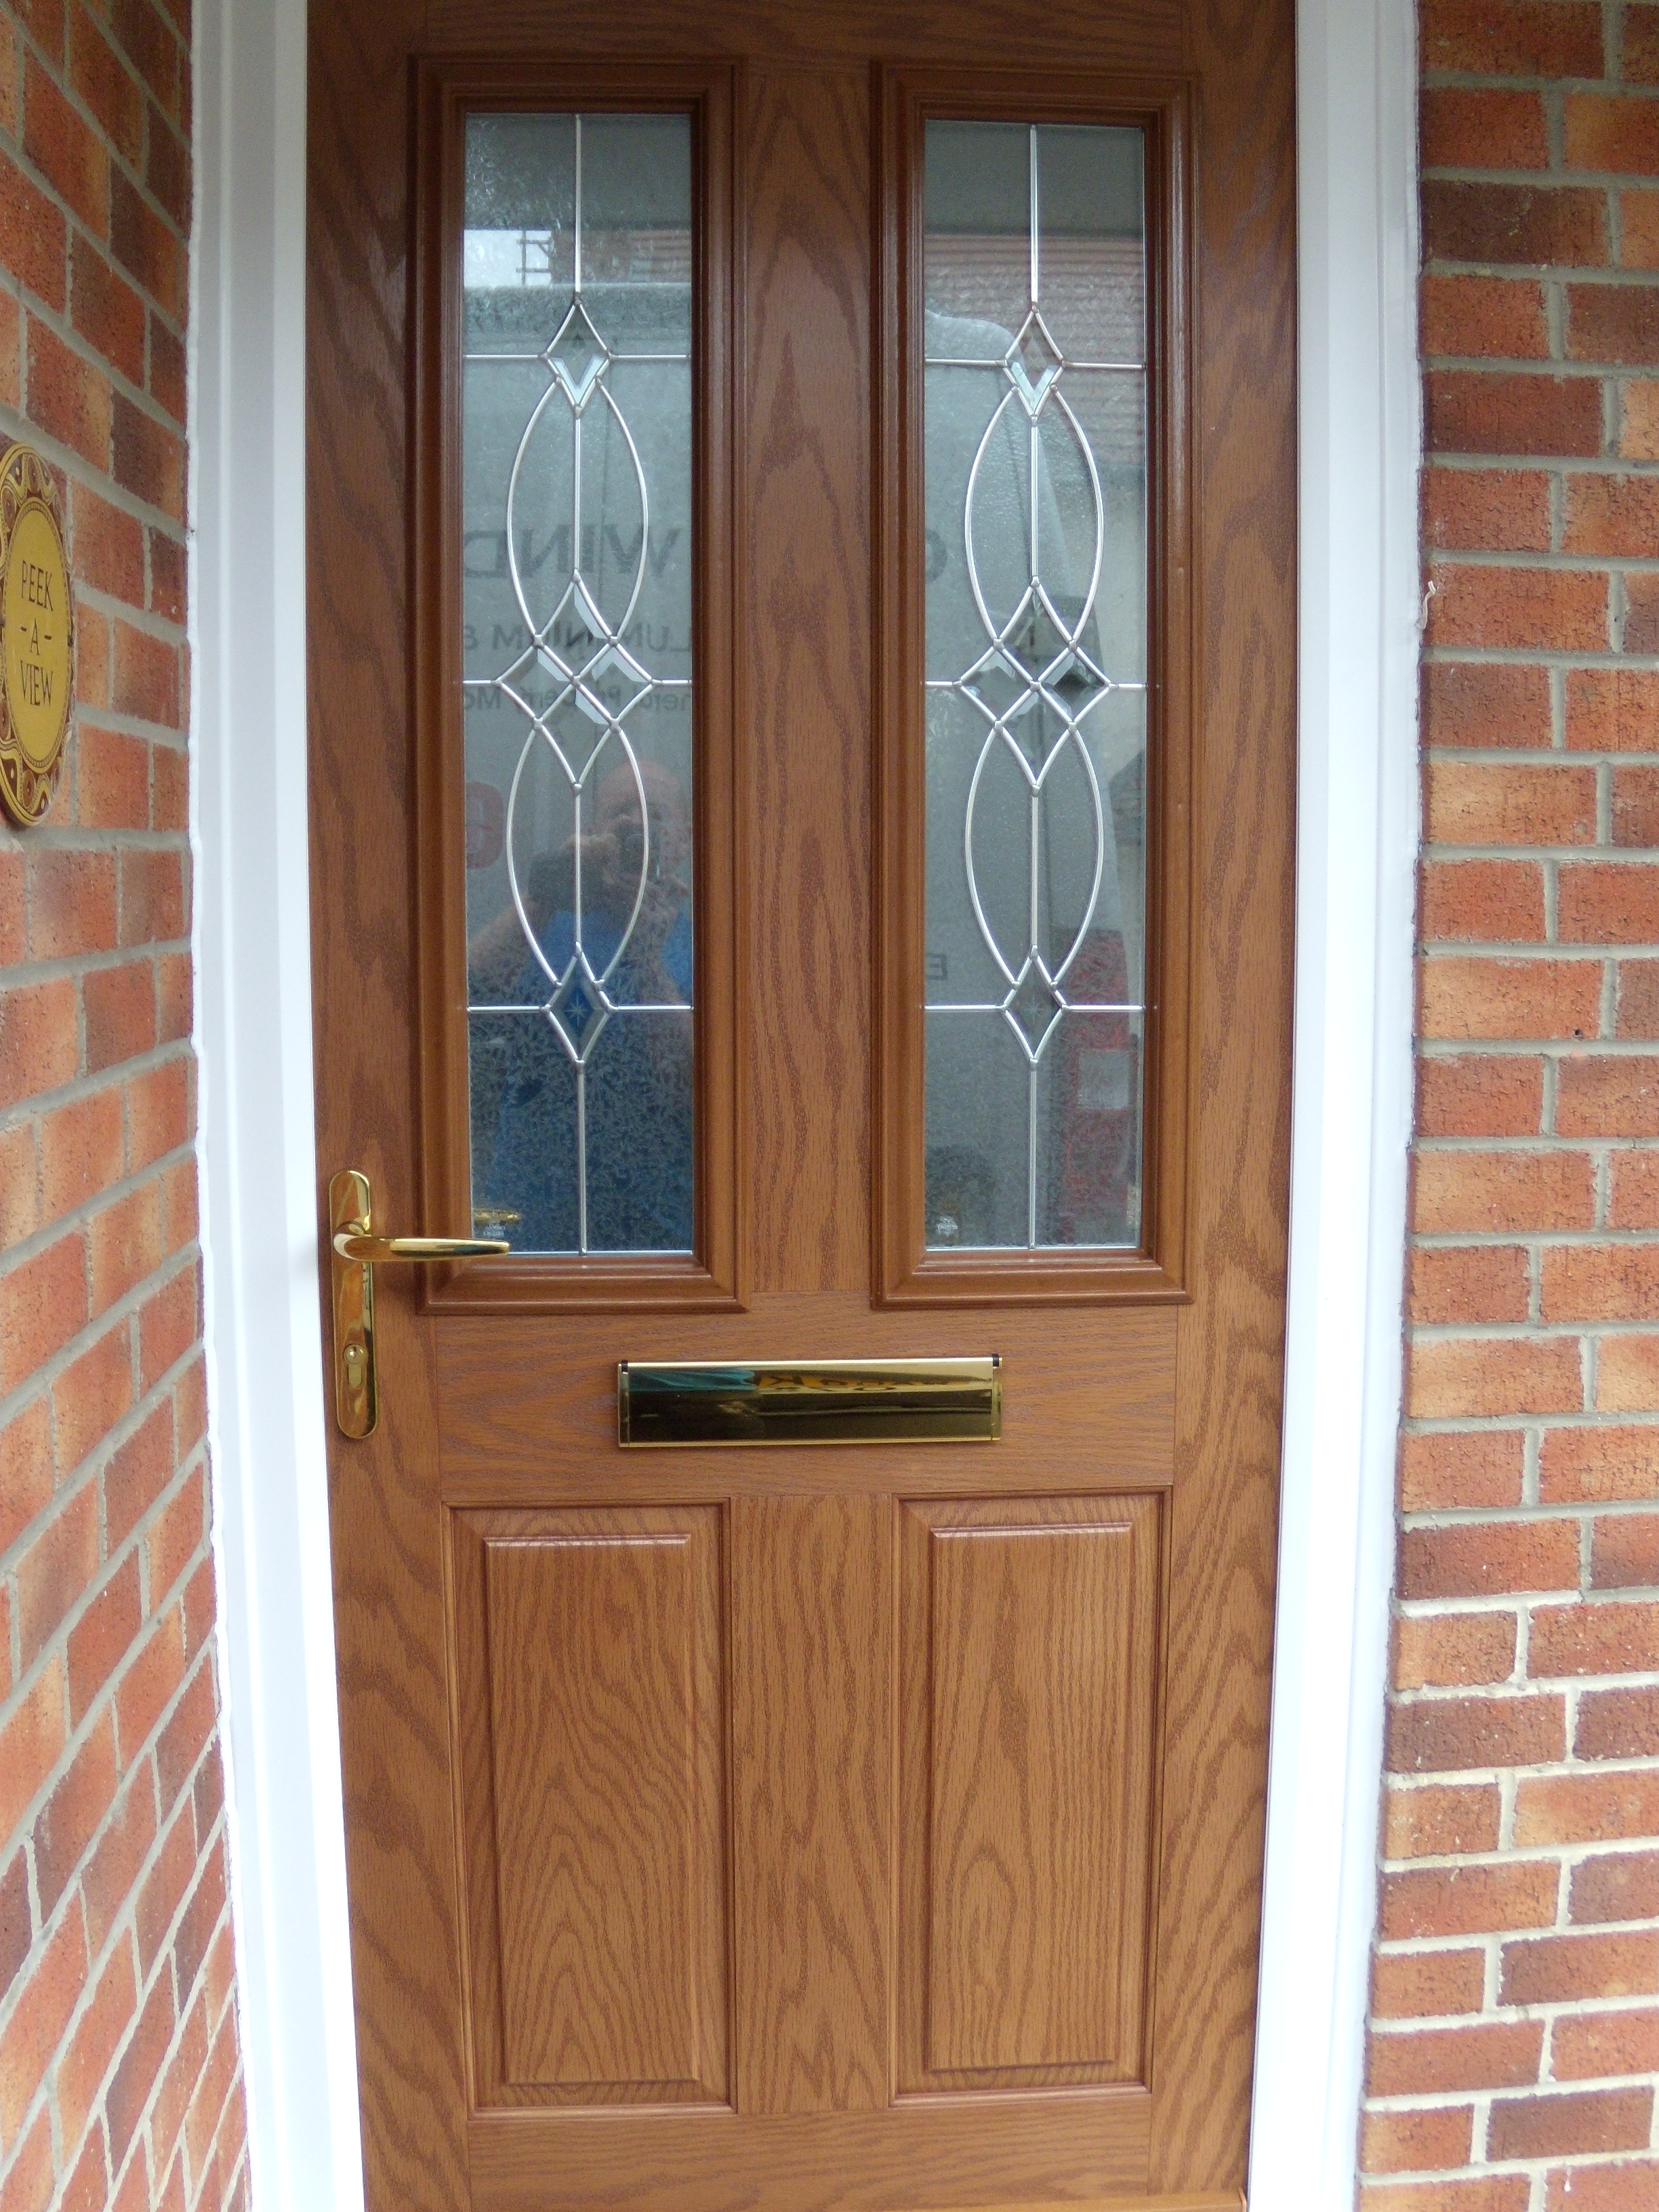 New composite front door quay windows for New front doors for homes